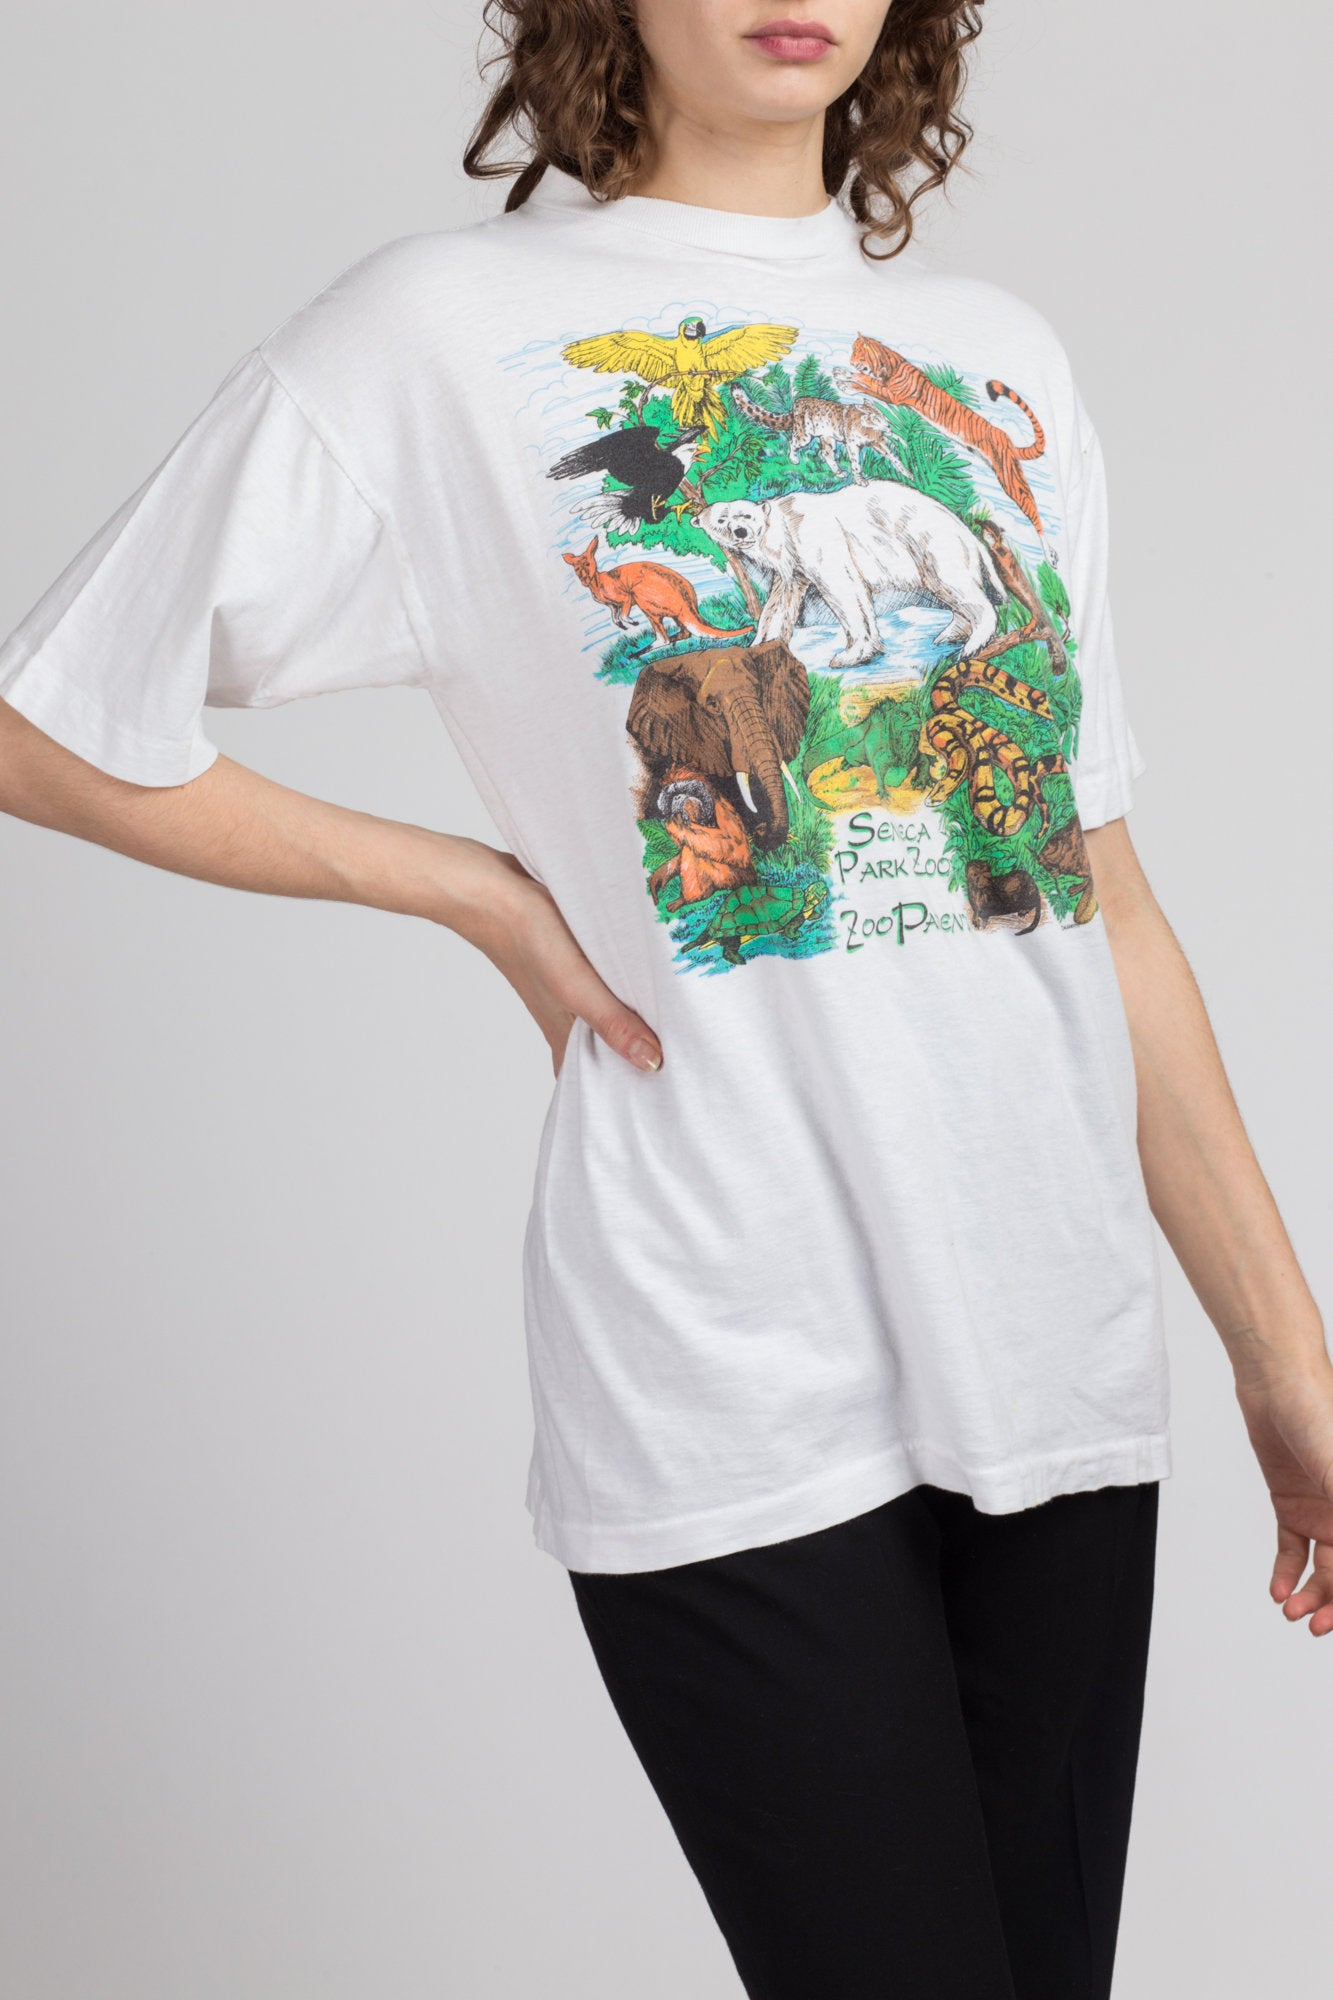 90s Zoo Animal T Shirt - Large